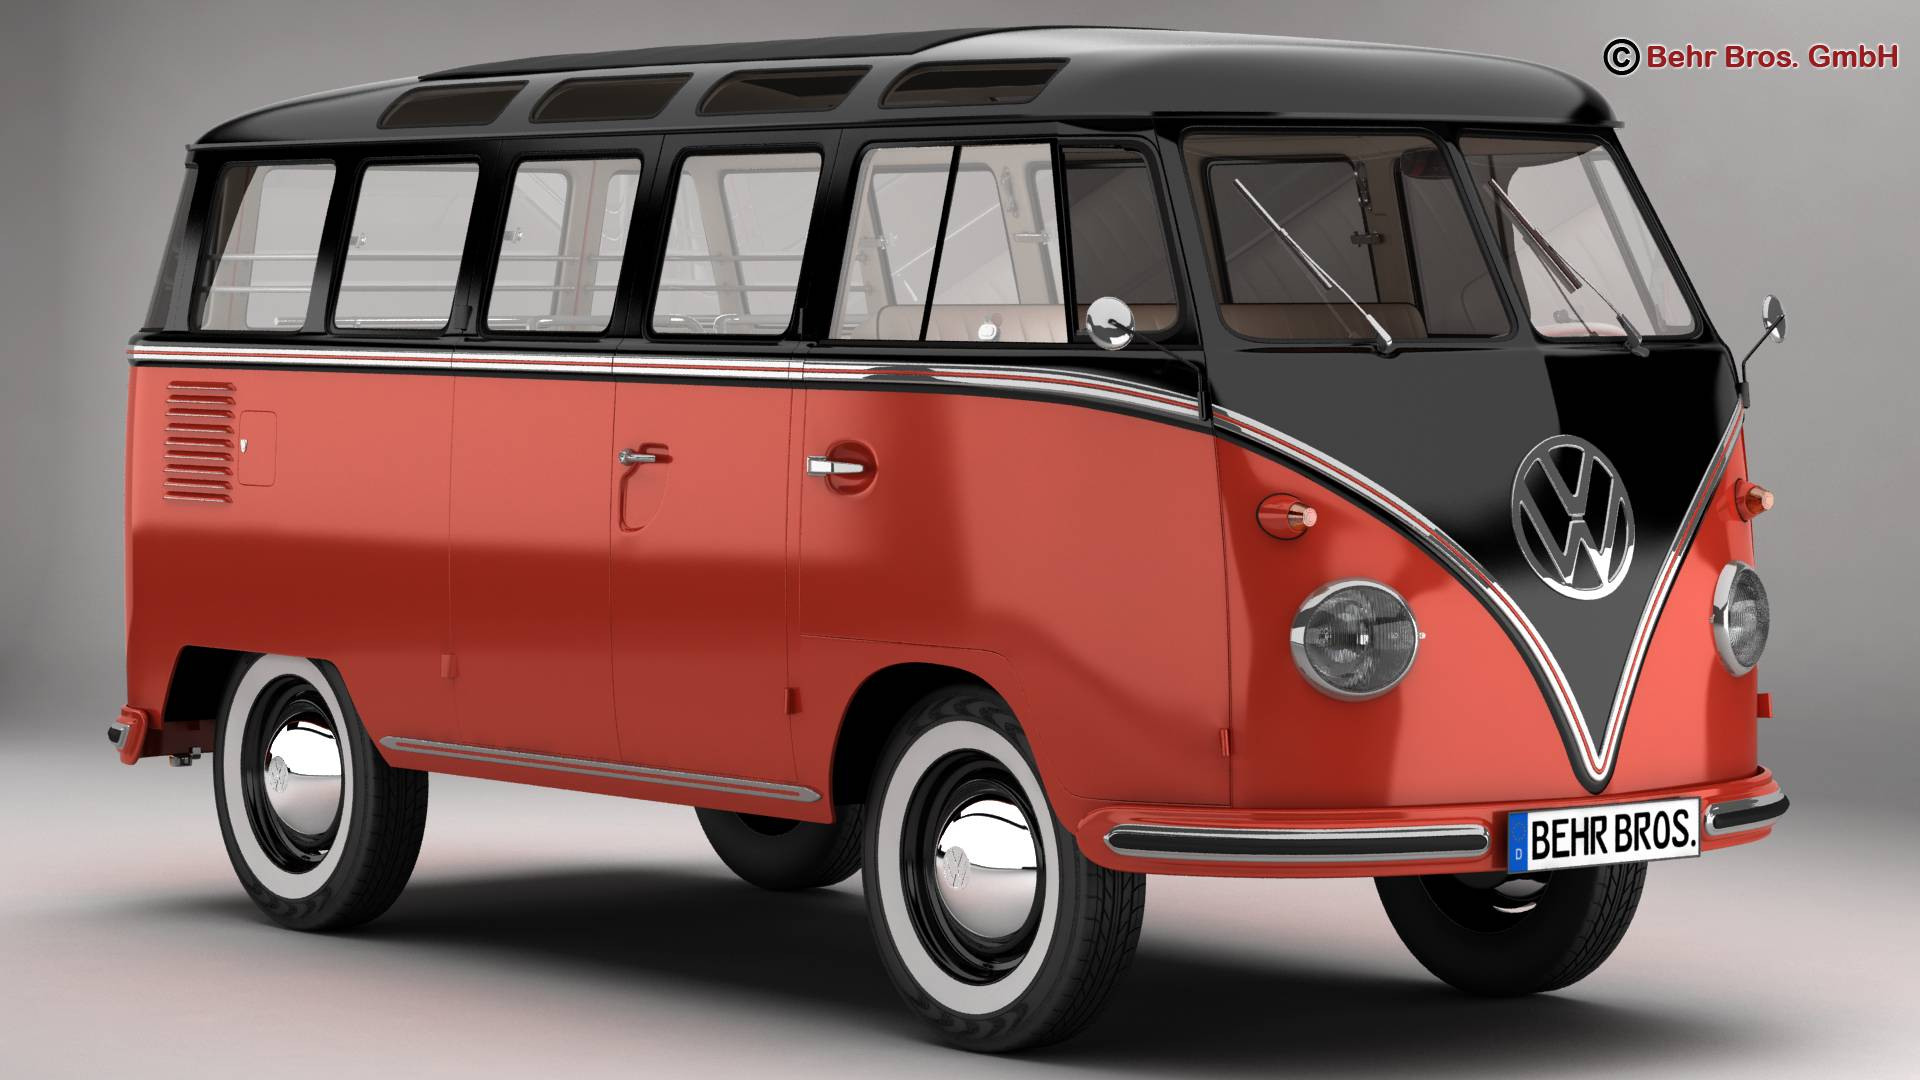 volkswagen type 2 samba 1959 3d model buy volkswagen type 2 samba 1959 3d model flatpyramid. Black Bedroom Furniture Sets. Home Design Ideas